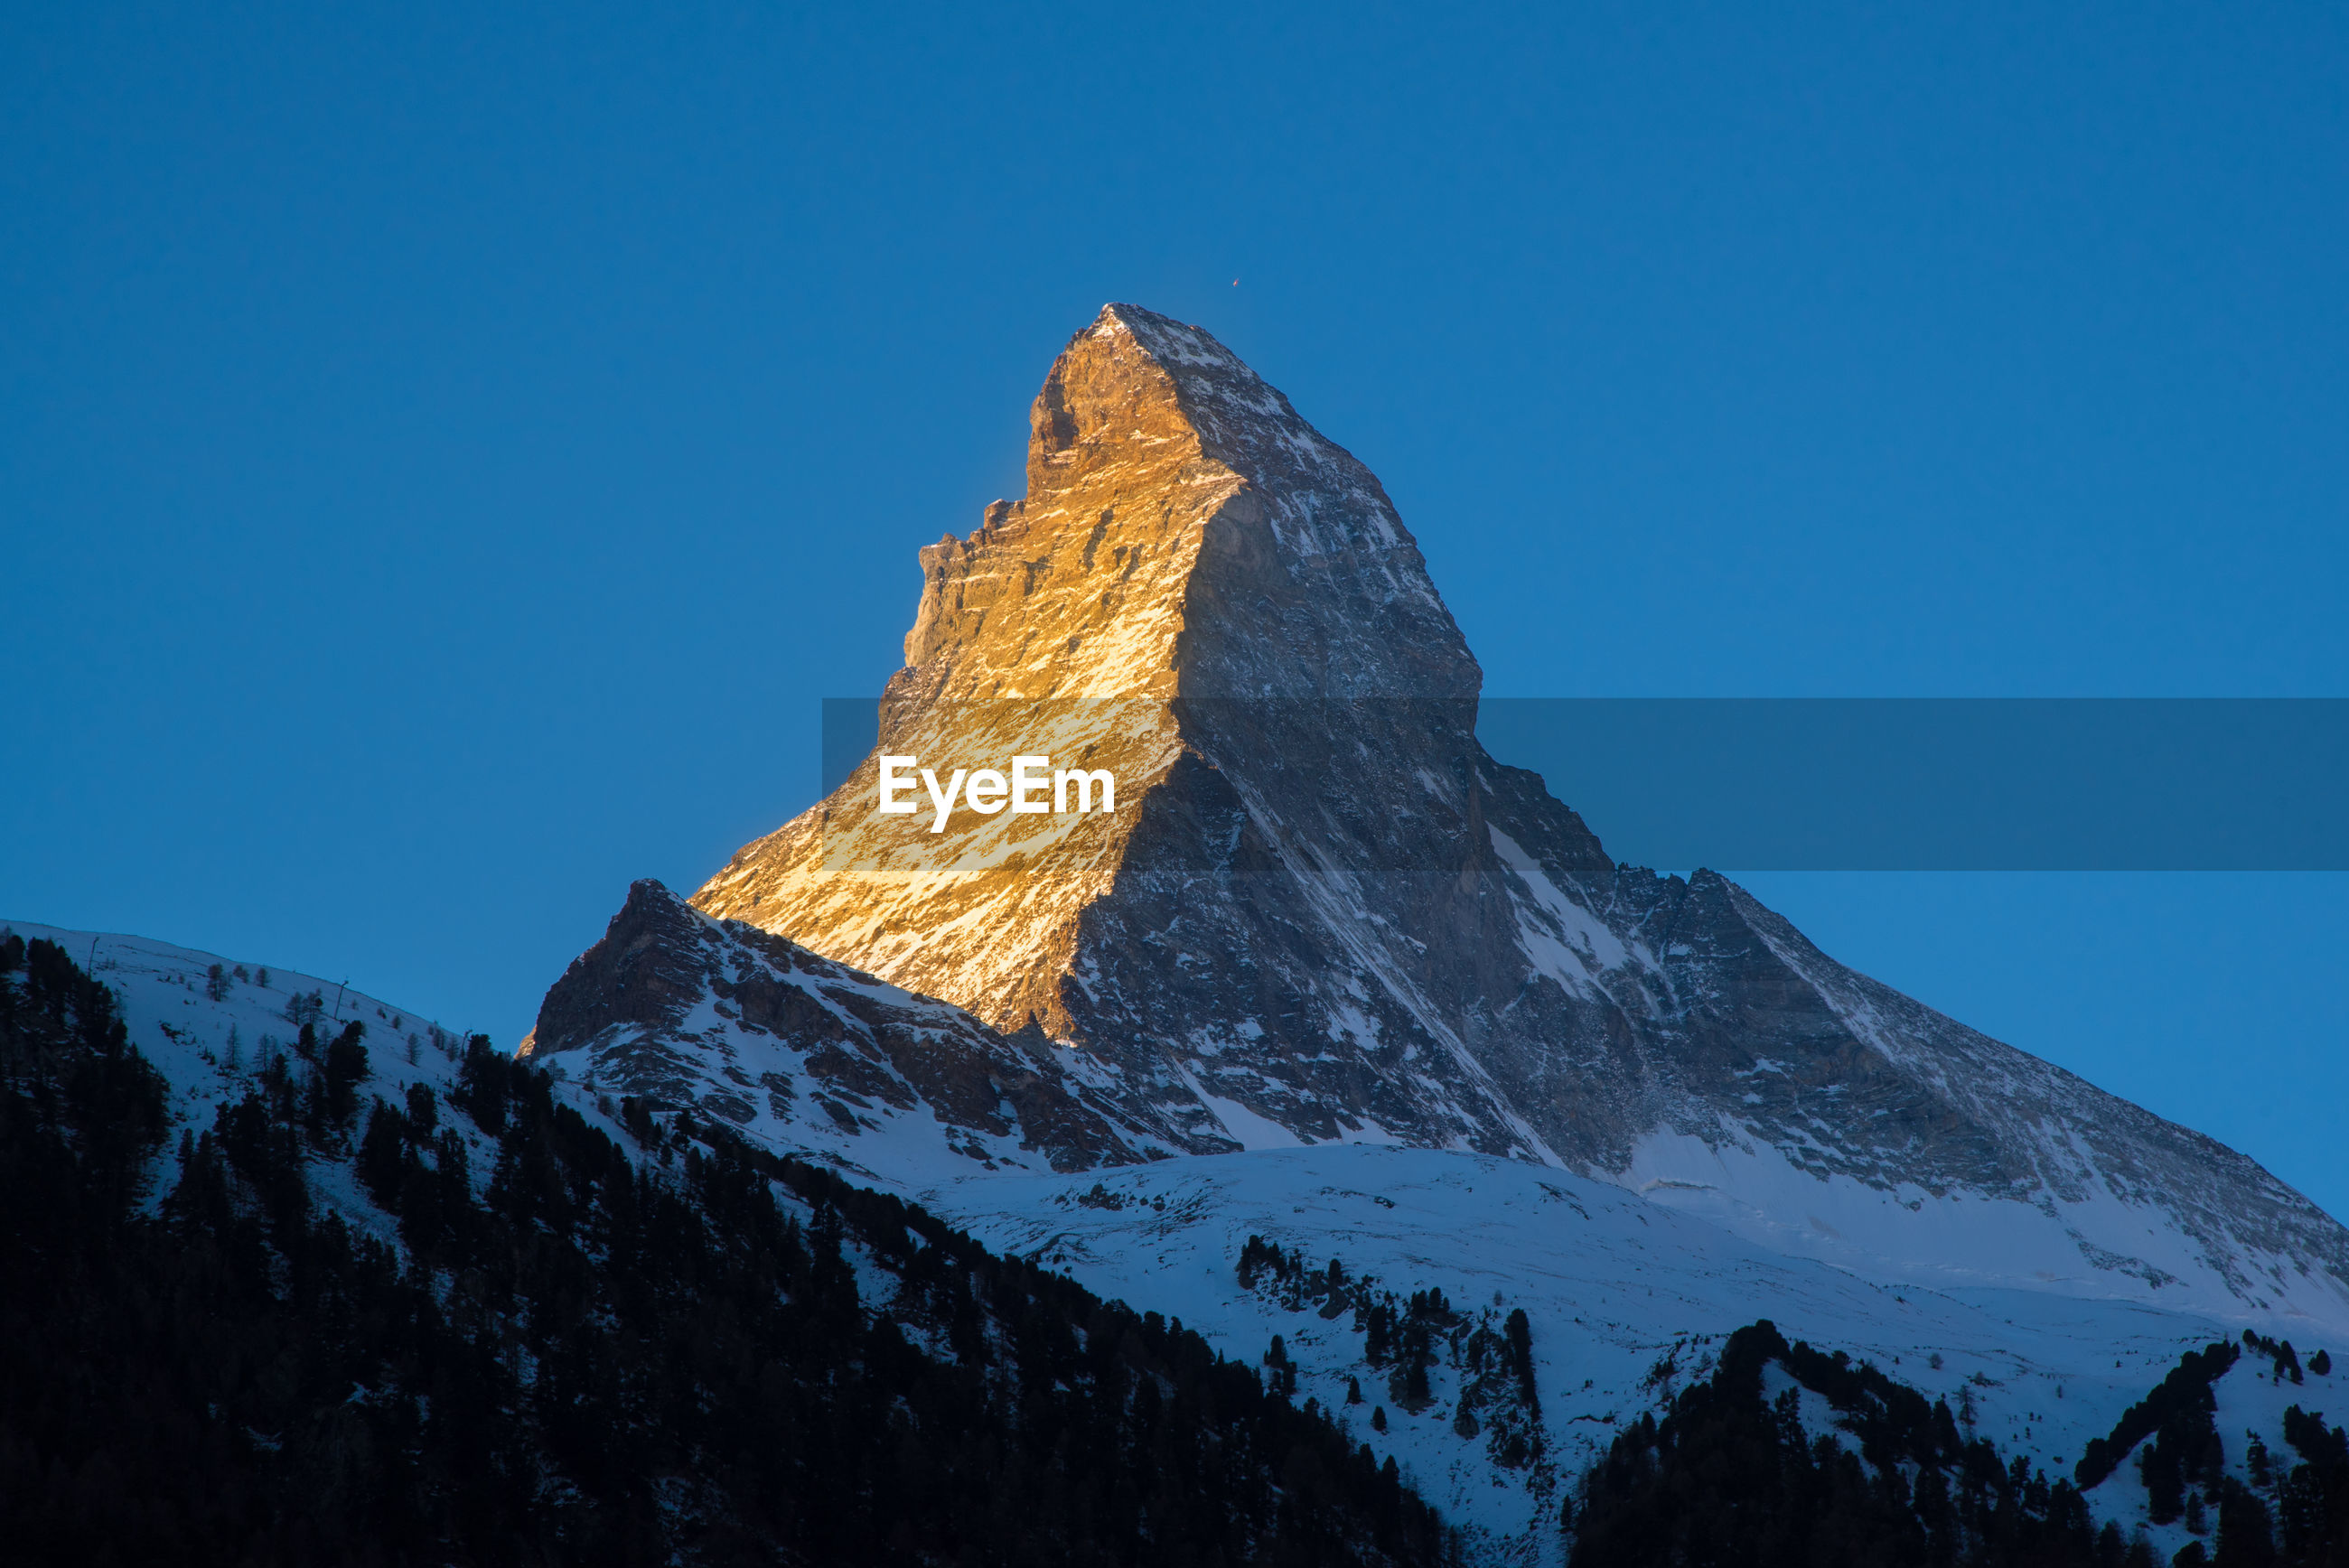 Low angle view of snowcapped mountain against clear blue sky during sunset